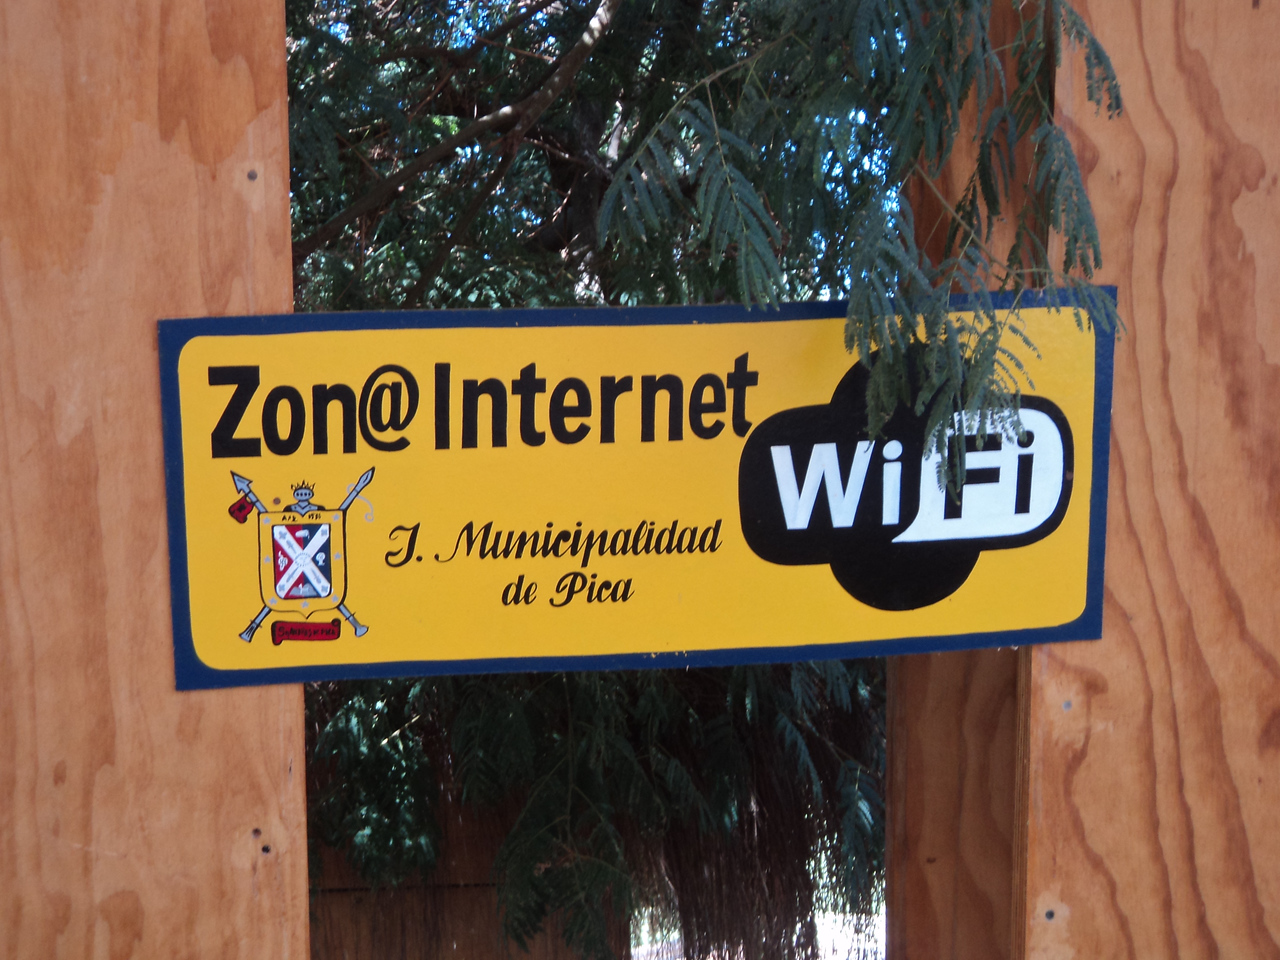 pica wifi zone sign